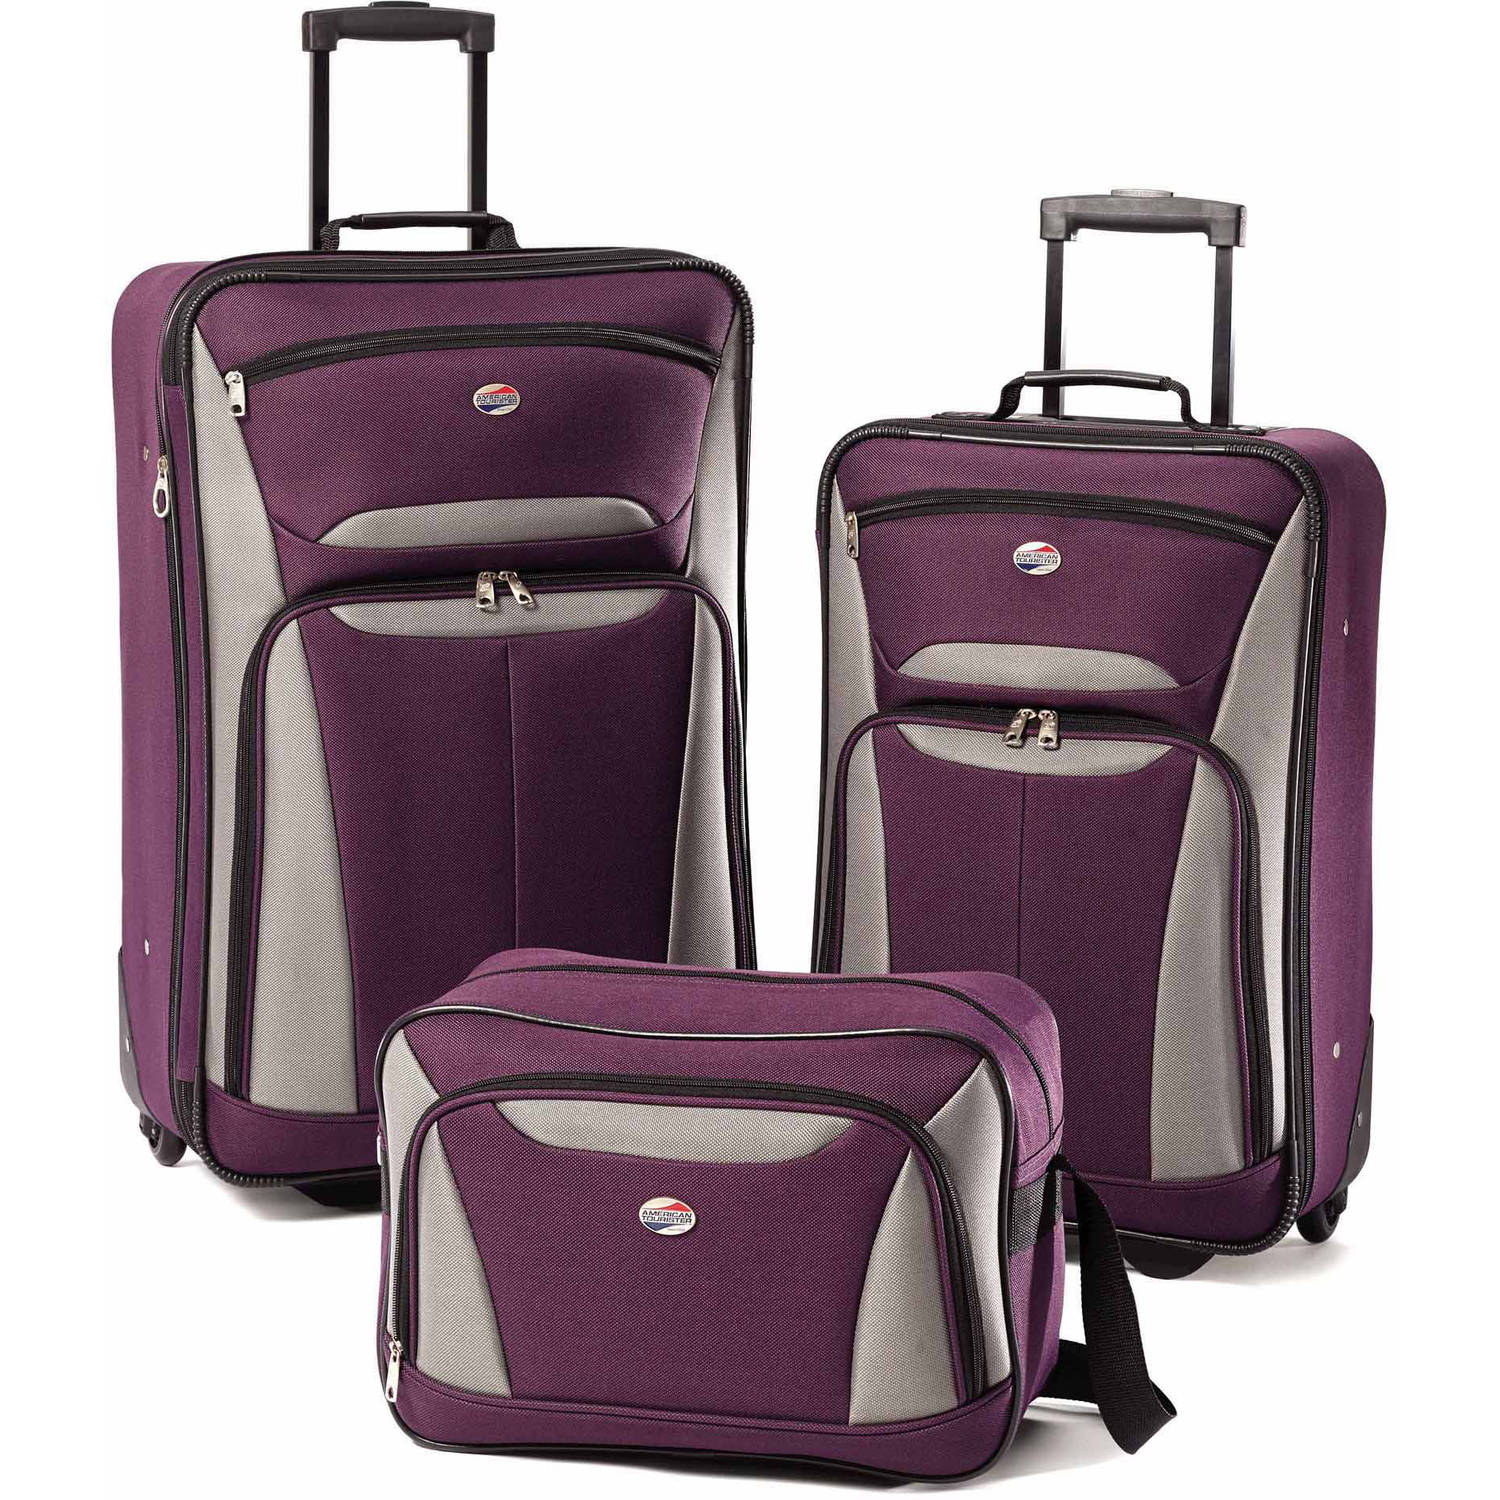 Luggage - Every Day Low Prices | Walmart.com